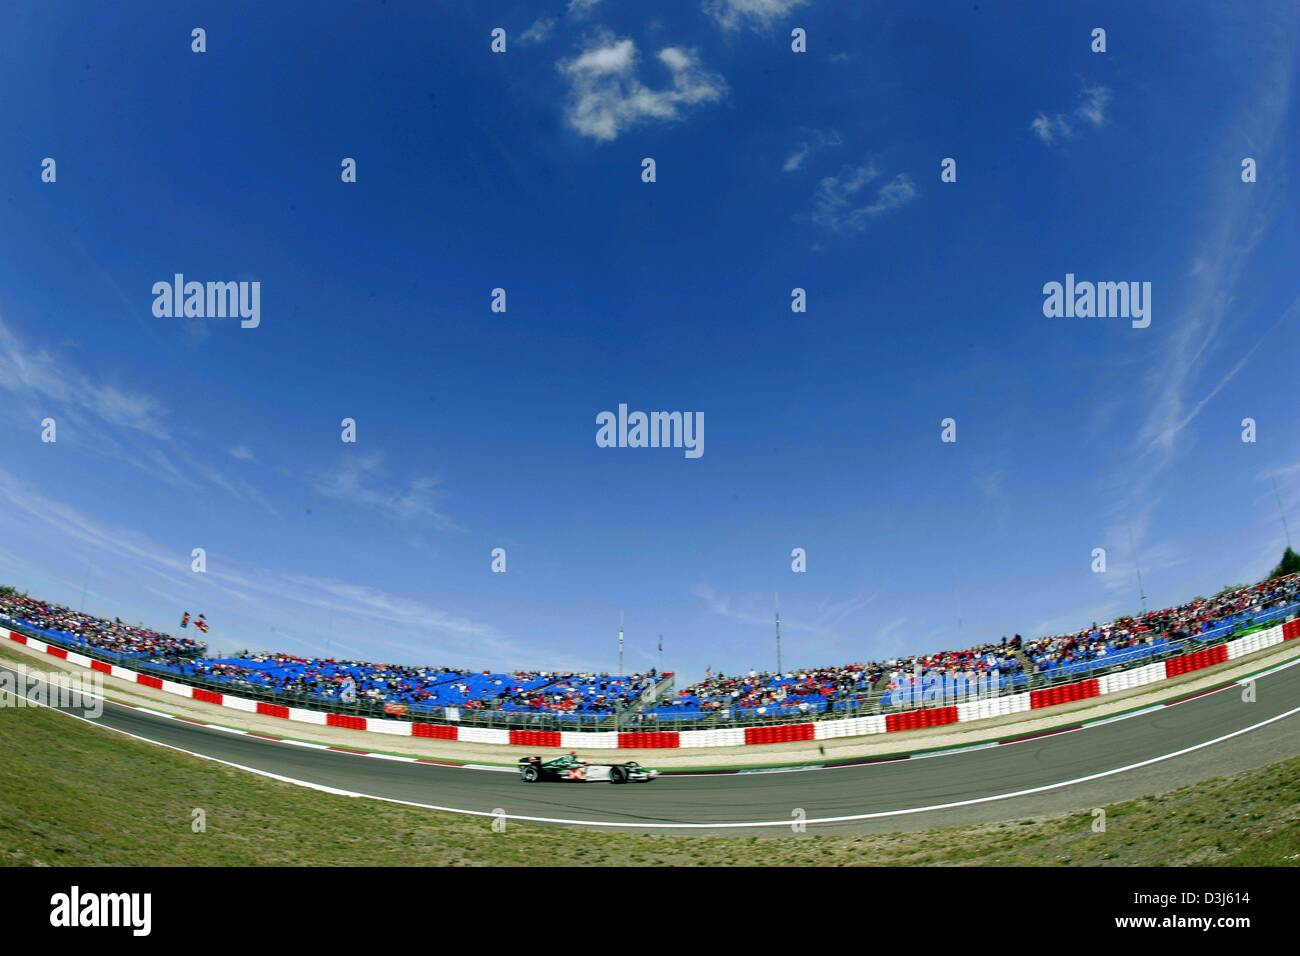 (dpa) - A Formula 1 race car drives through a curve under a blue sky at the Nuerburgring race course in Germany, - Stock Image